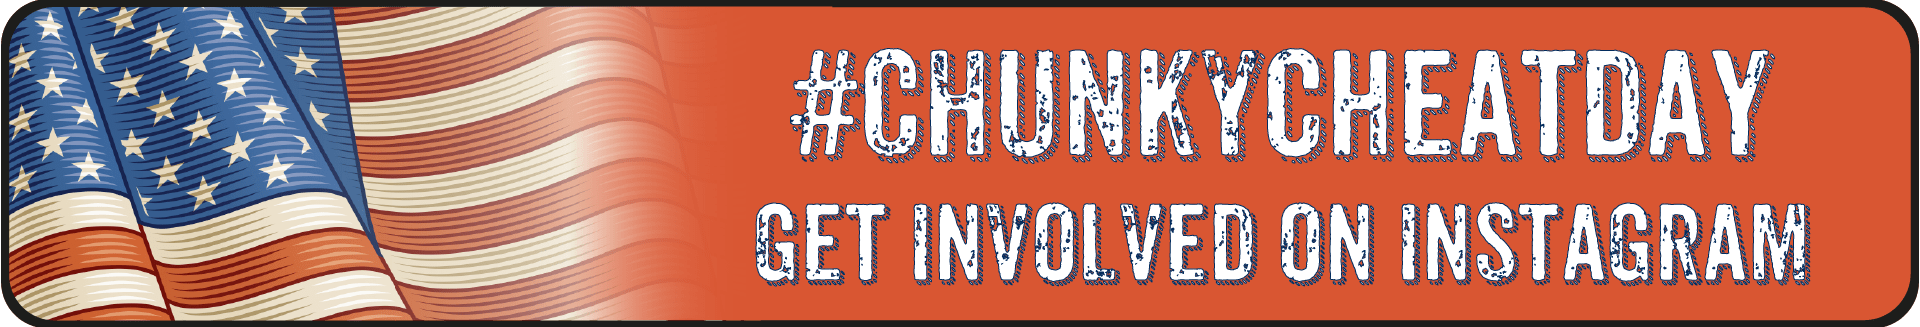 #ChunkyCheatDay Get involved on Instagram